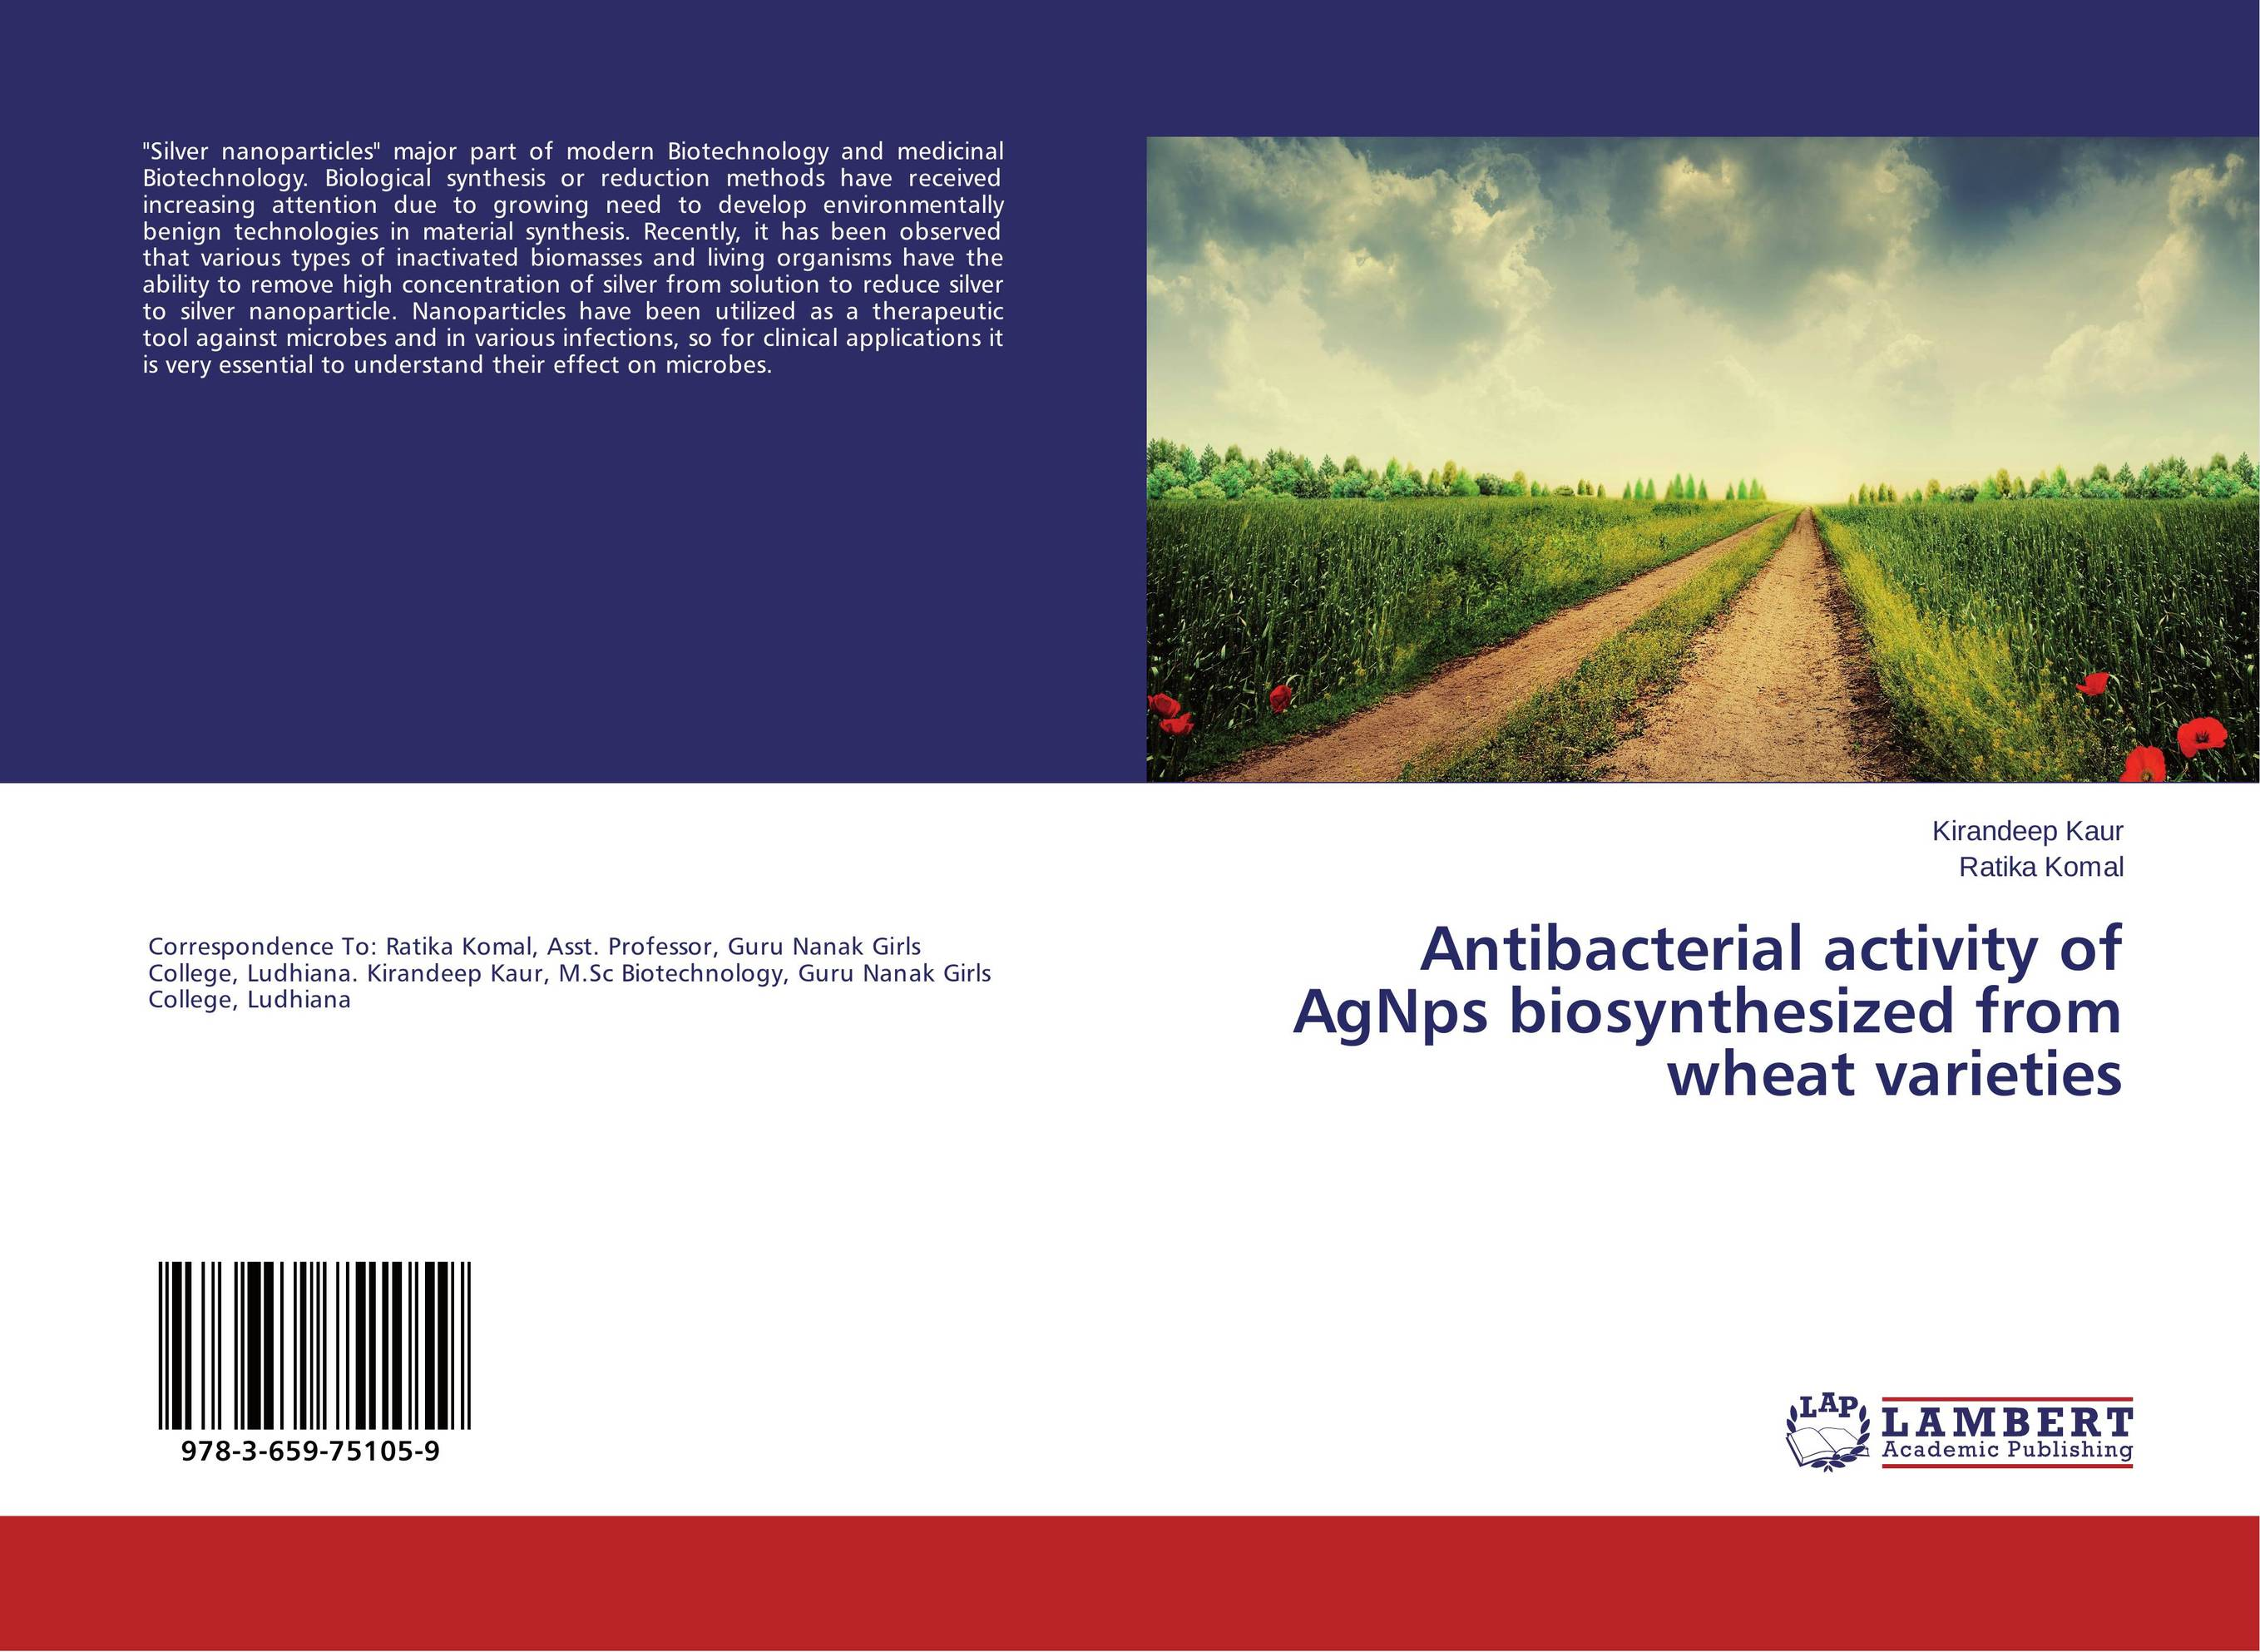 Antibacterial activity of AgNps biosynthesized from wheat varieties effect of methods of composting on quality of compost from wheat straw